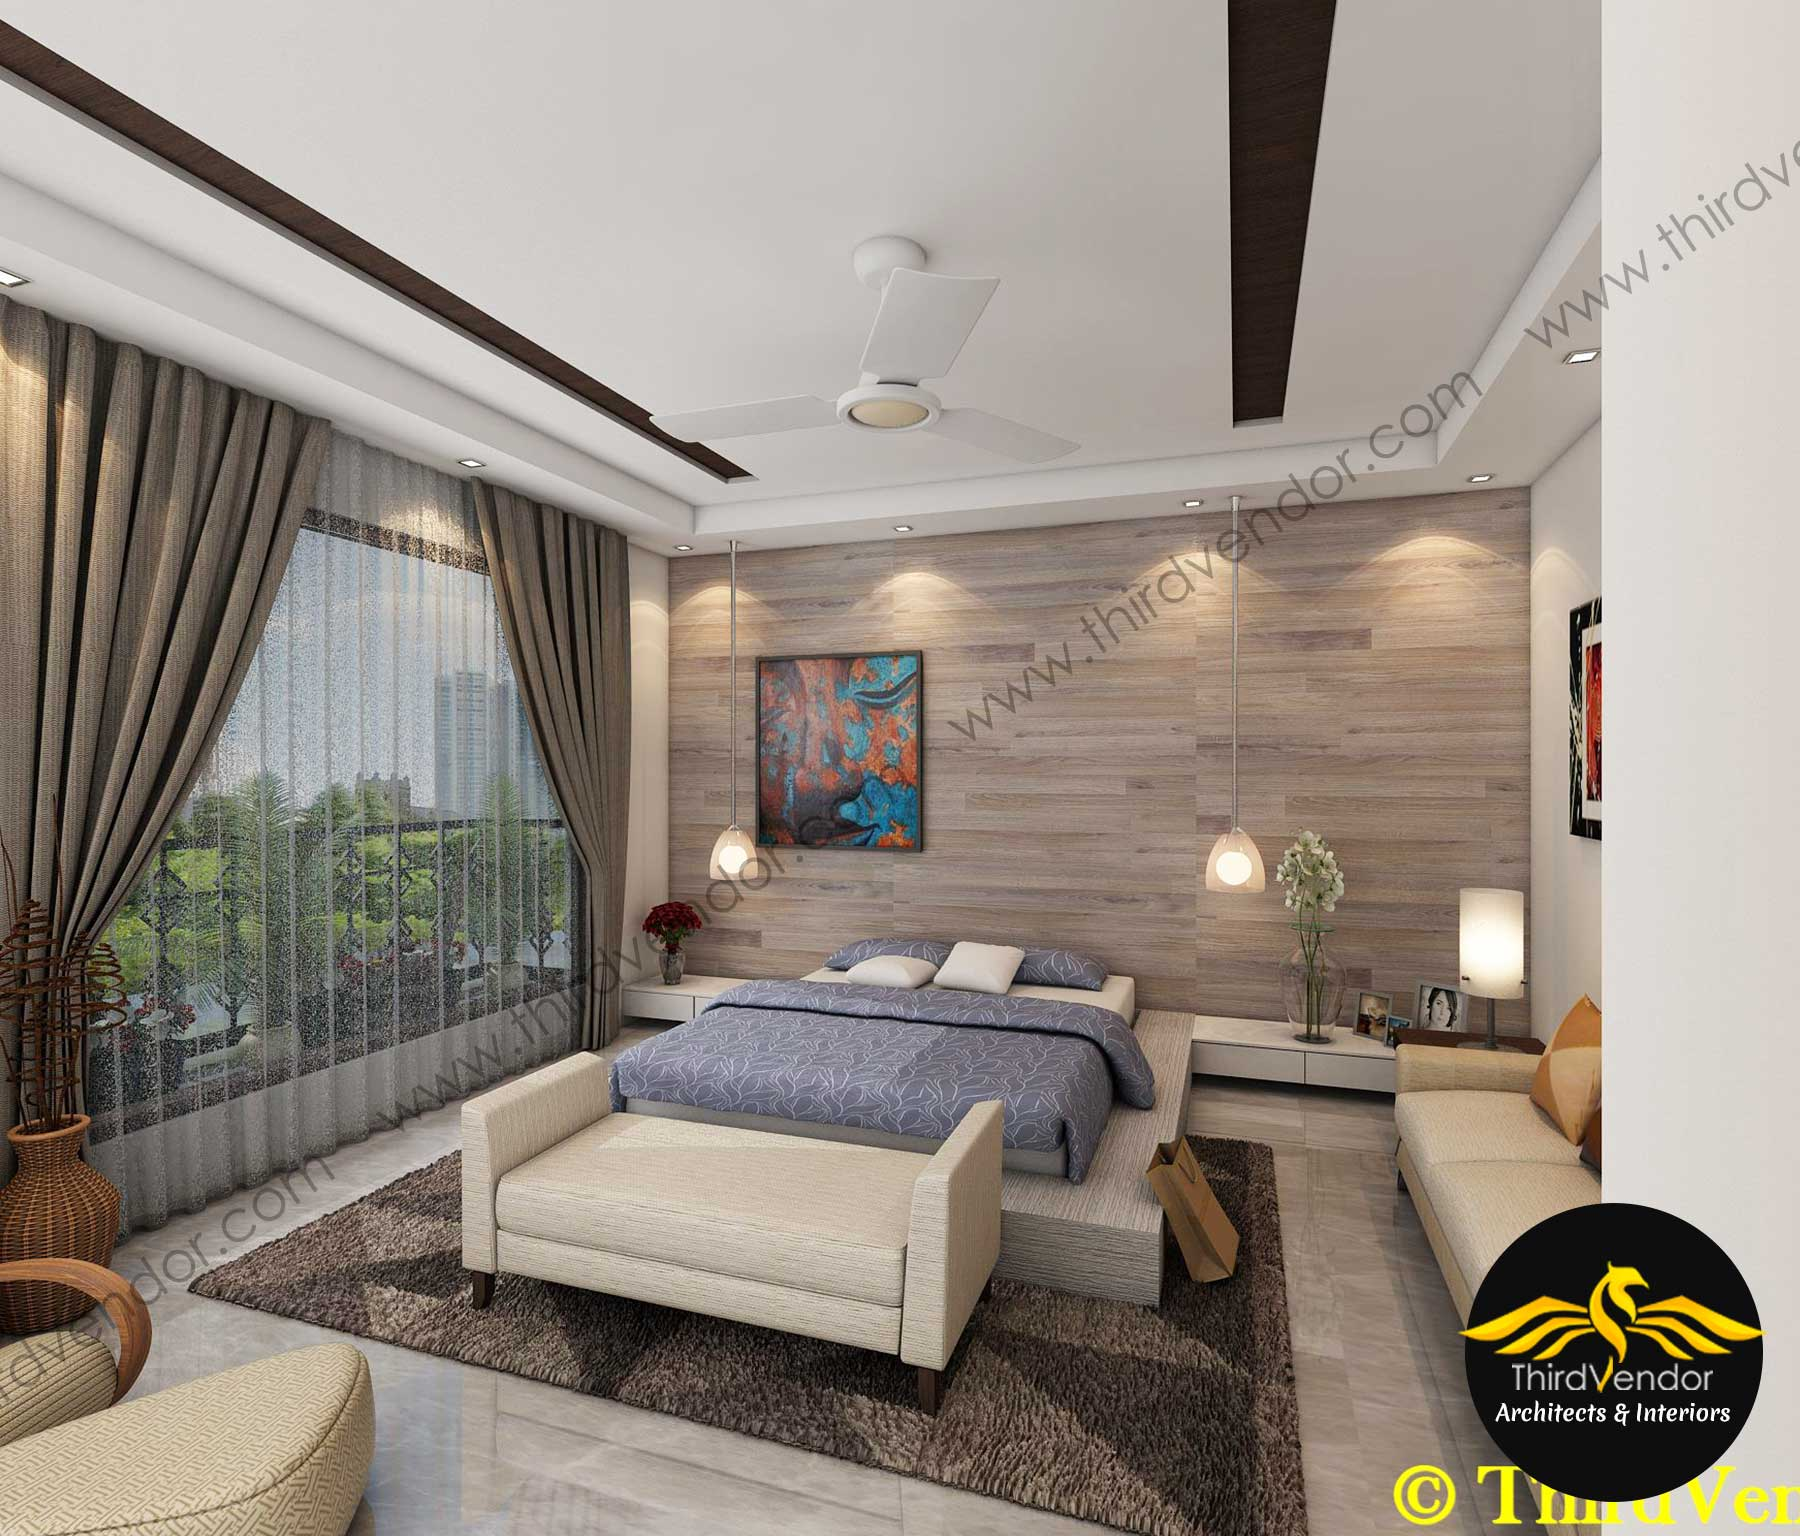 Thirdvendor Interior Designing Architecture Consultancy Landscaping Vastu Small Budget Big Makeover Interior Execution